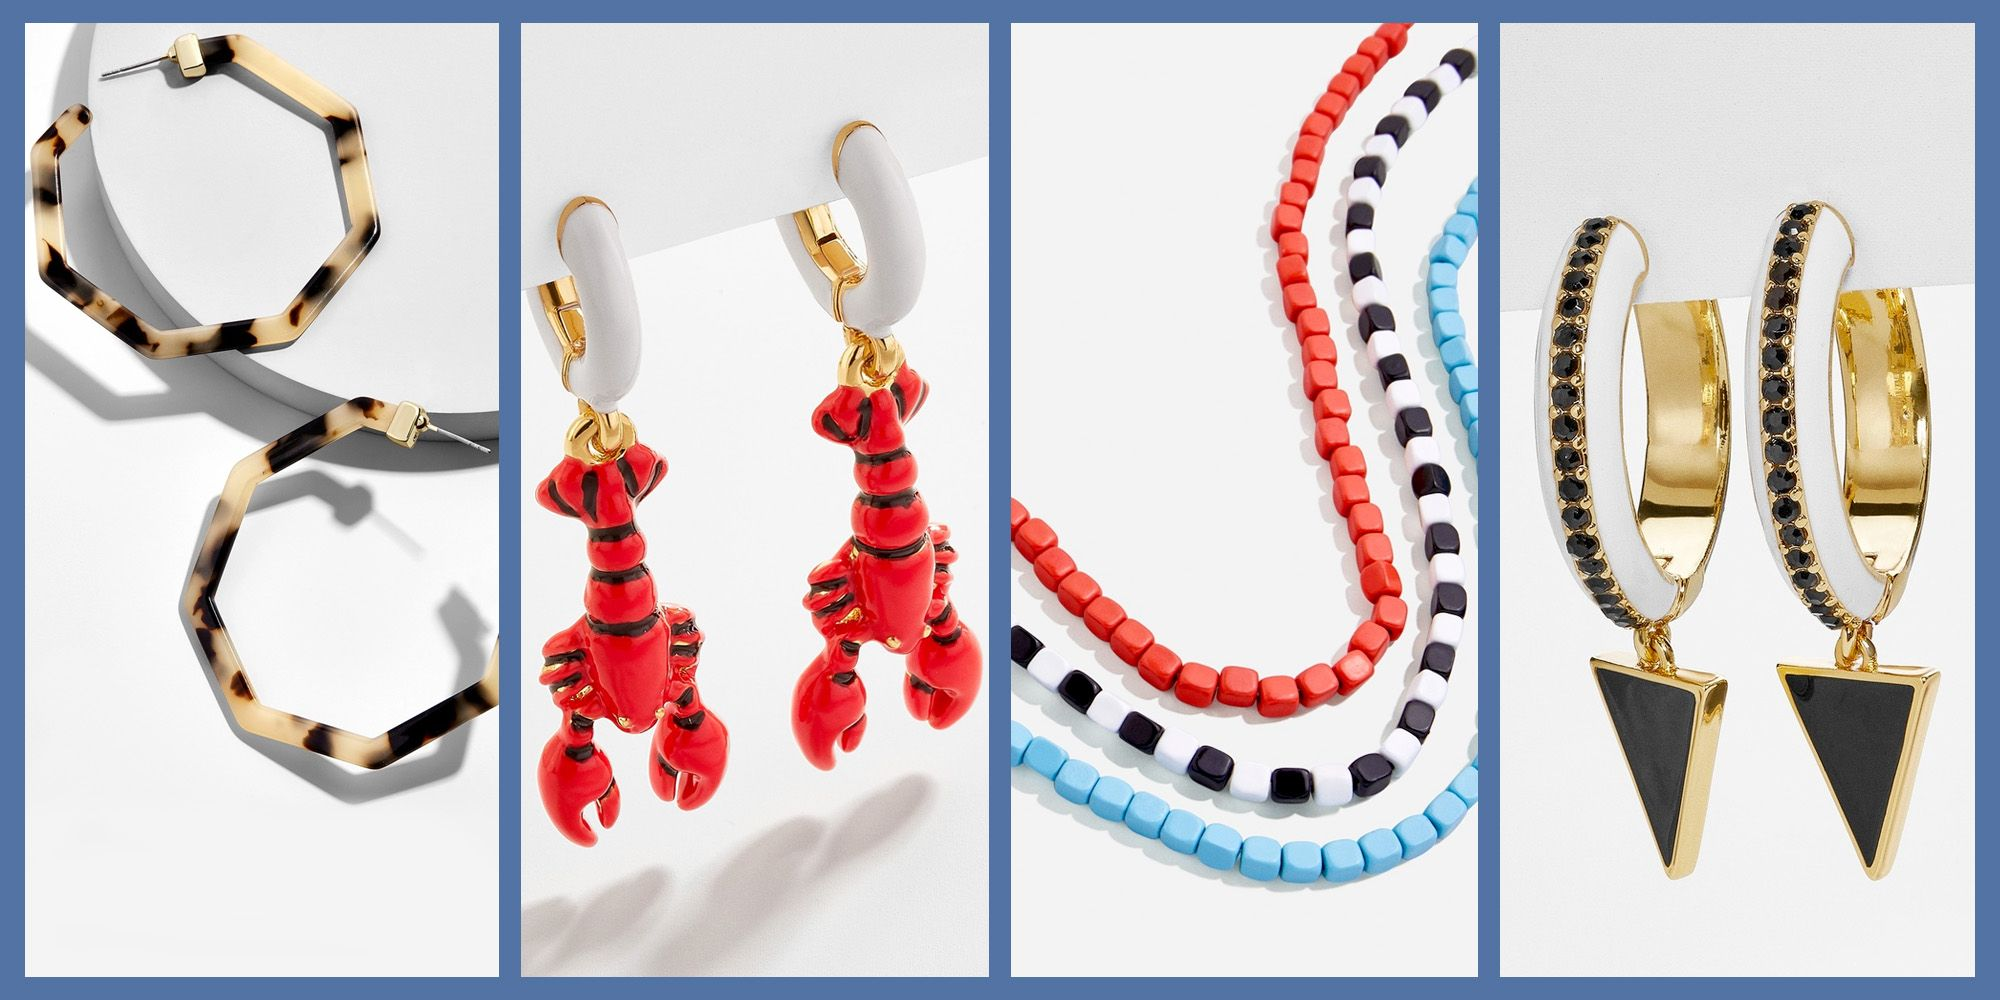 Baublebar's Fun Summer Jewelry is Just $10 Right Now